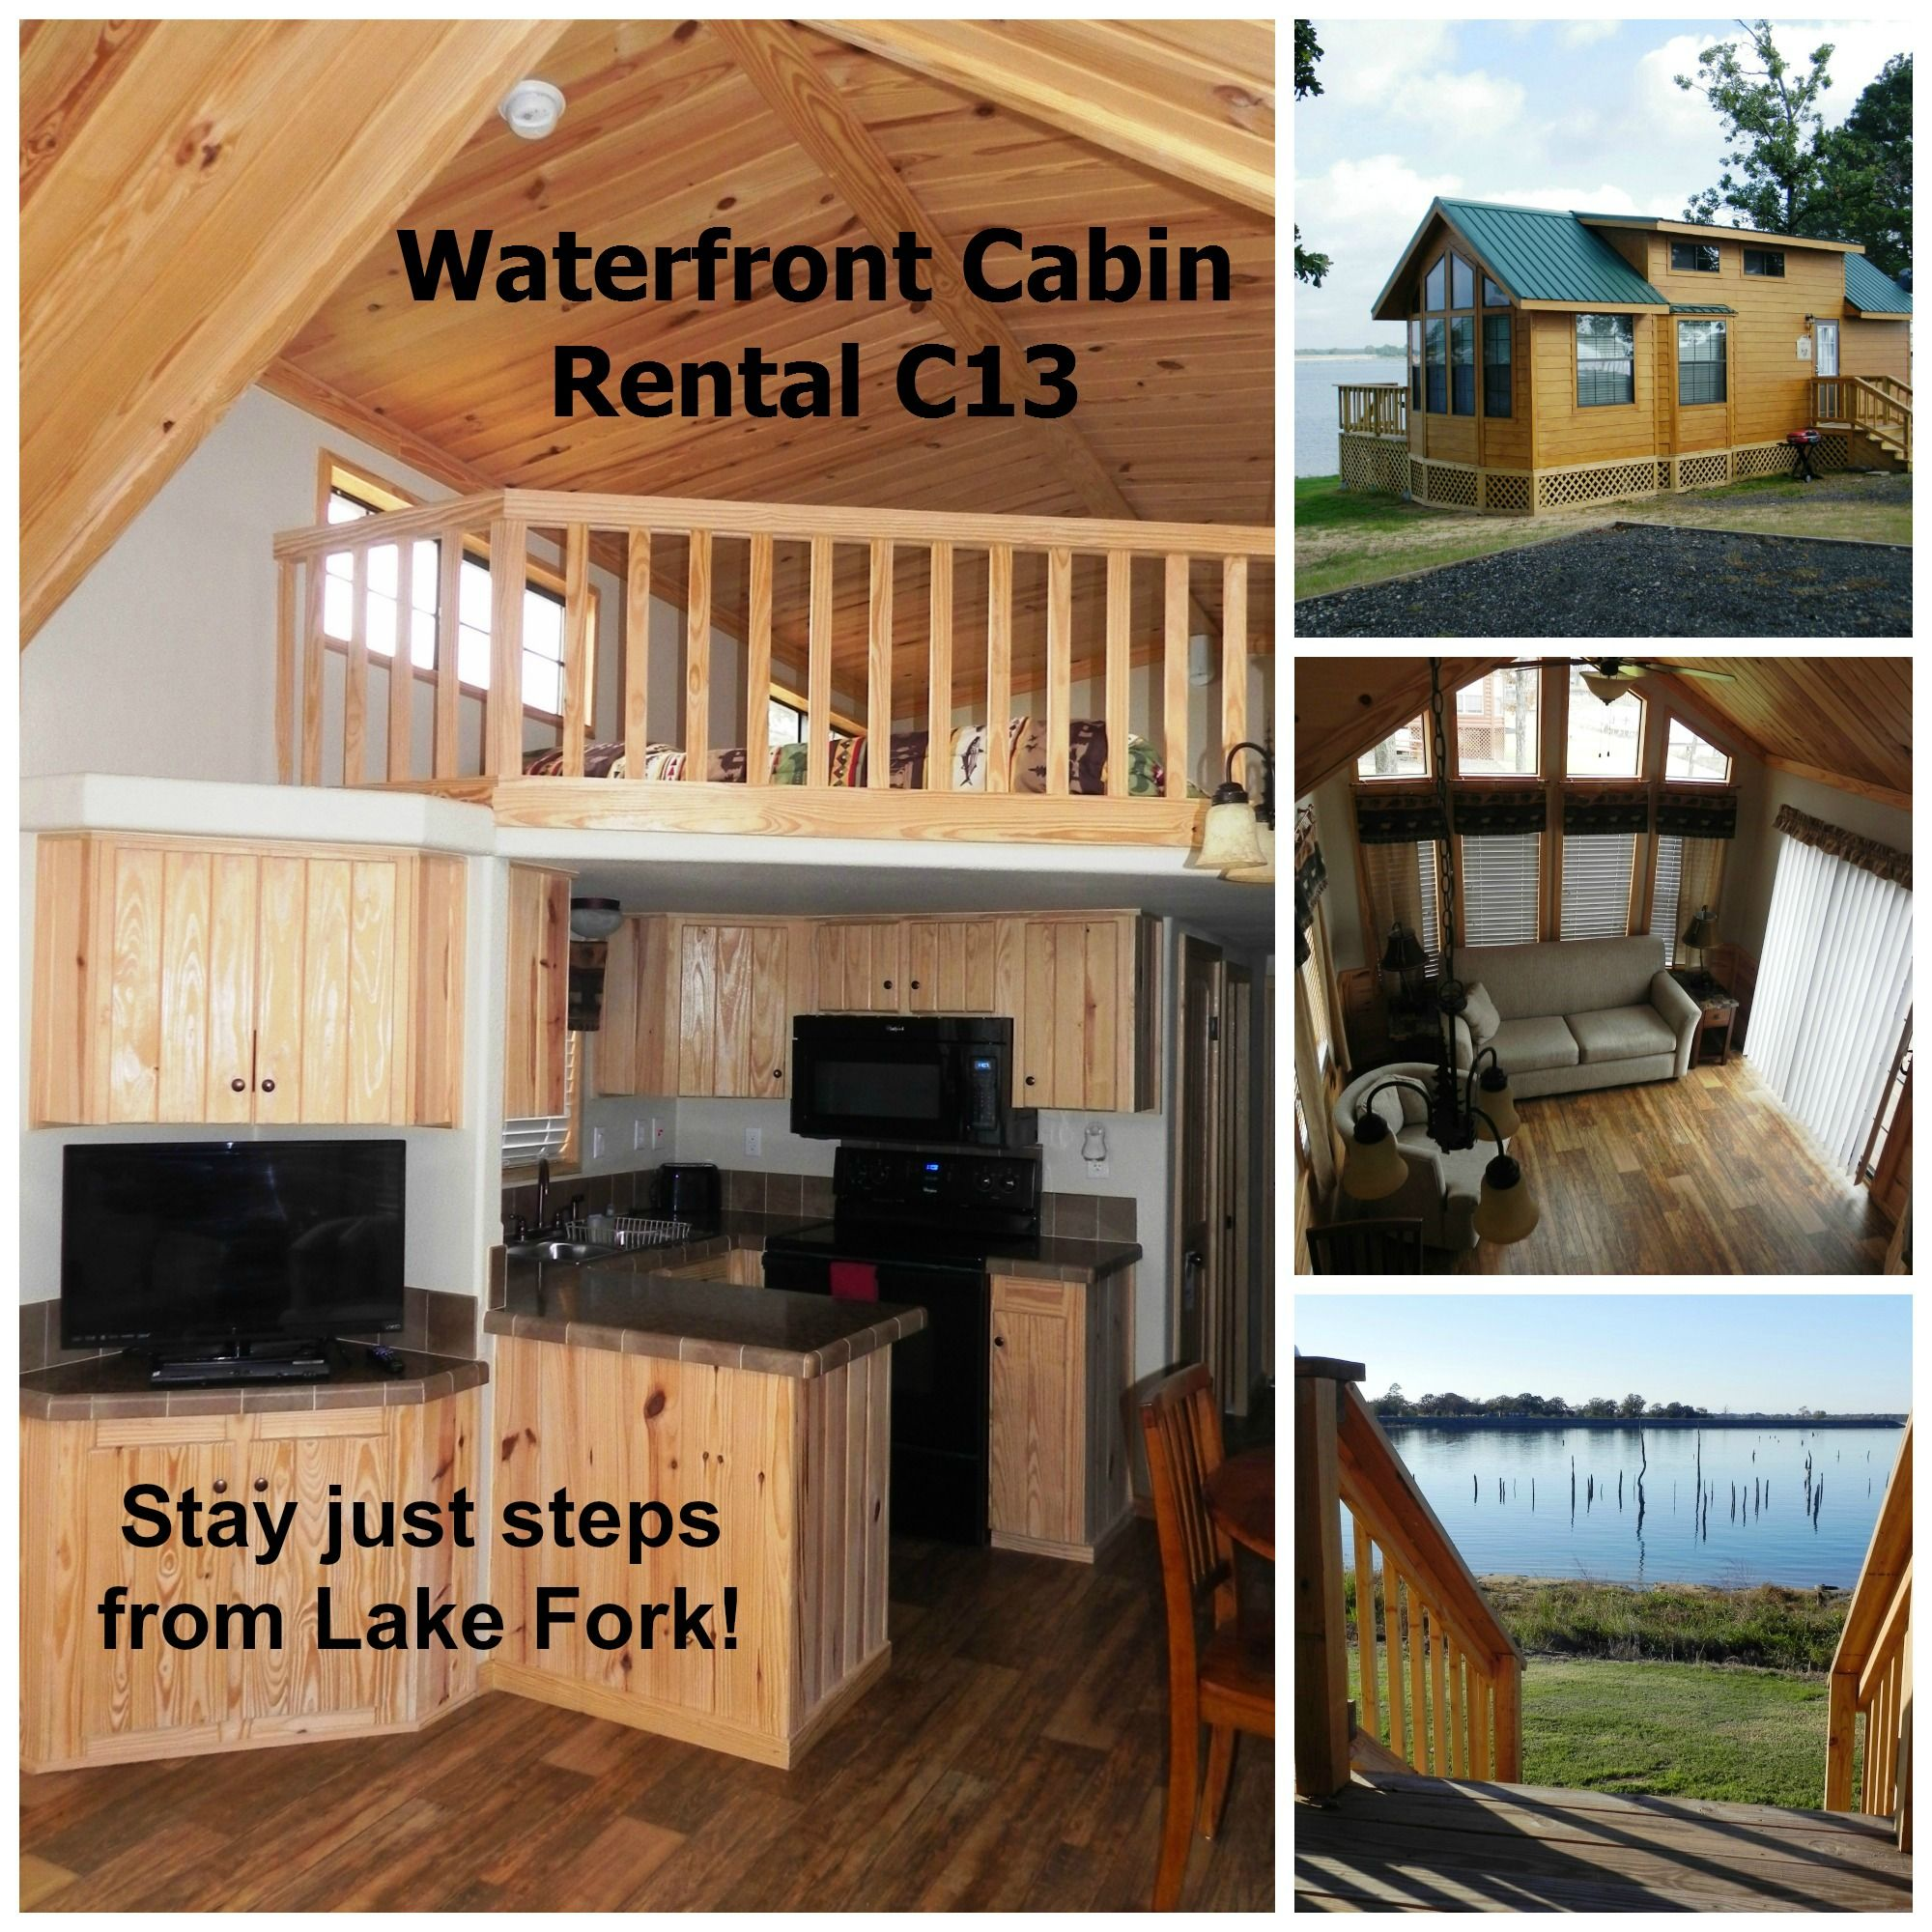 1 of 5 lake fork waterfront cabins we have available www